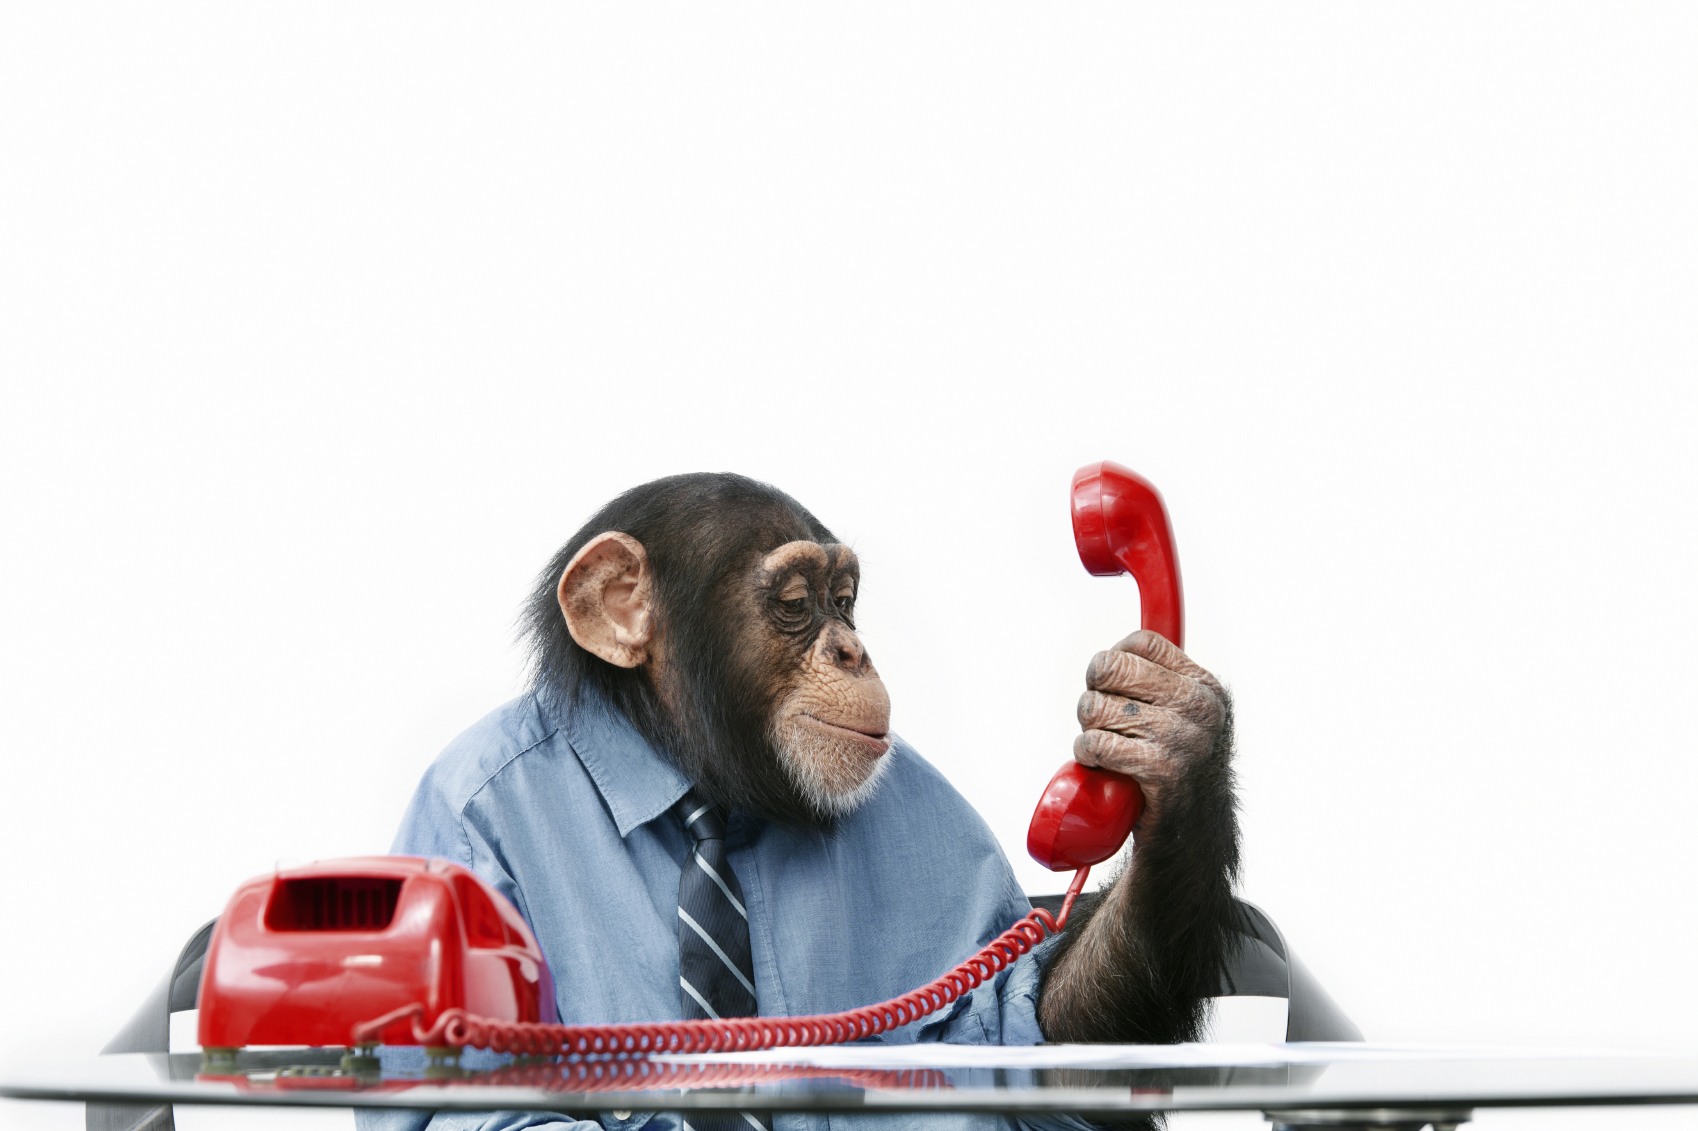 Monkey_customer_service